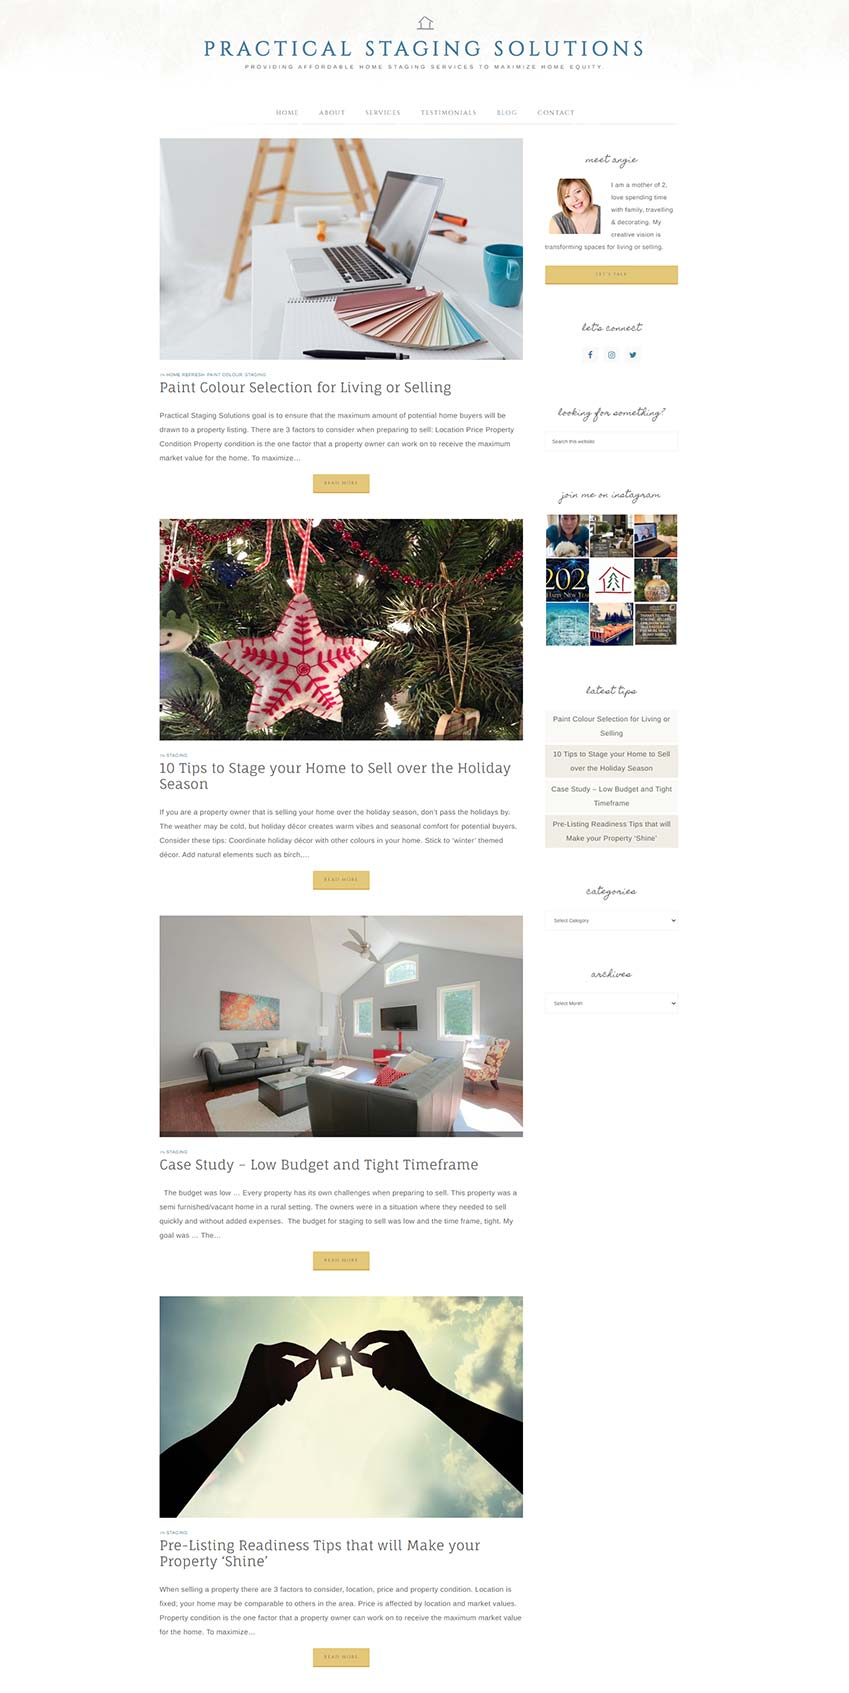 Practical Staging Solutions Website Redesign - blog content to create credibility and improve SEO